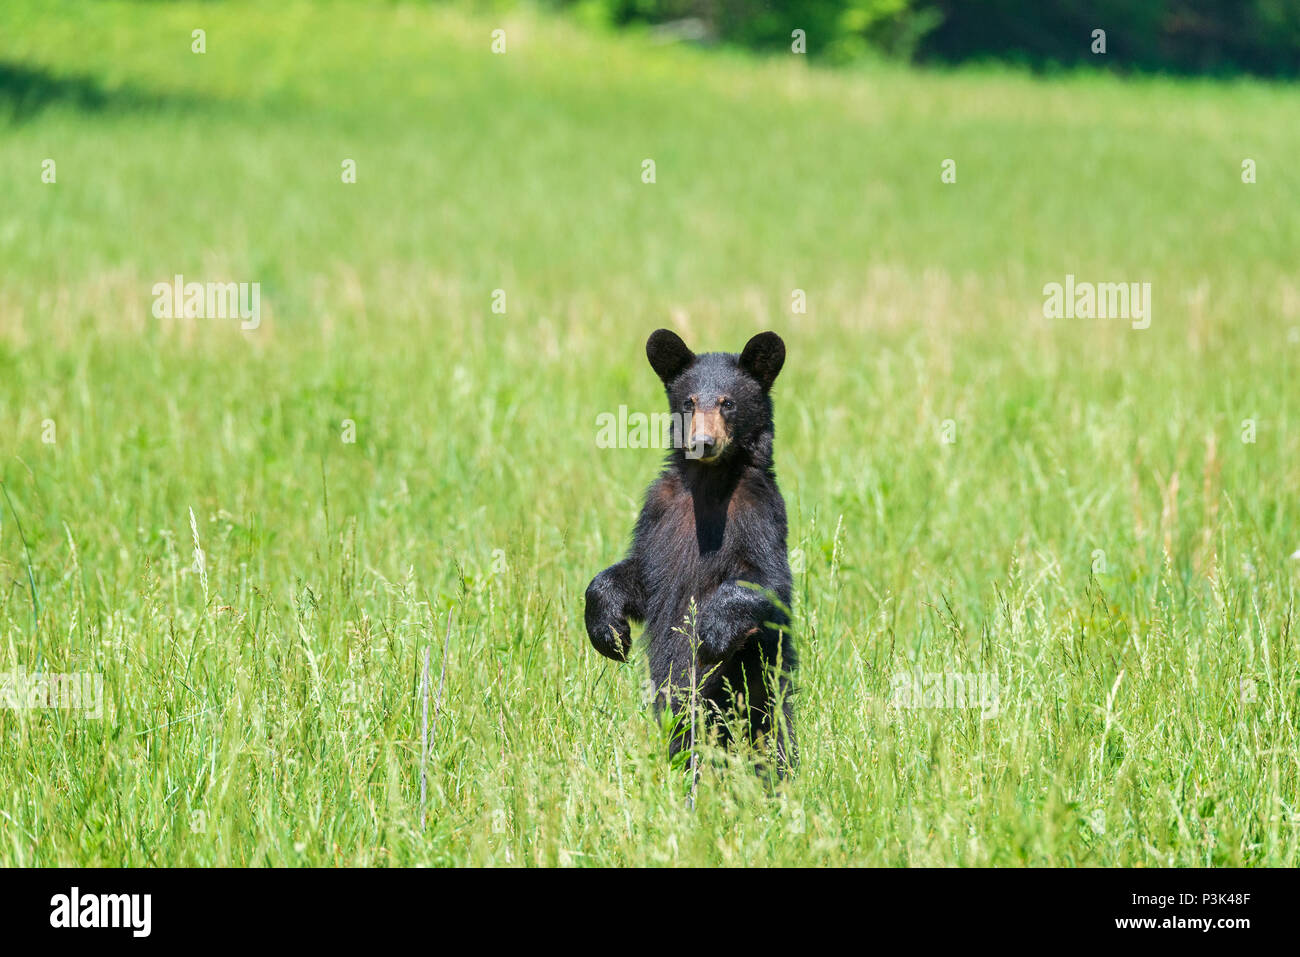 Horizontal shot of a standing Black Bear in a field looking at the Camera With Copy Space. - Stock Image